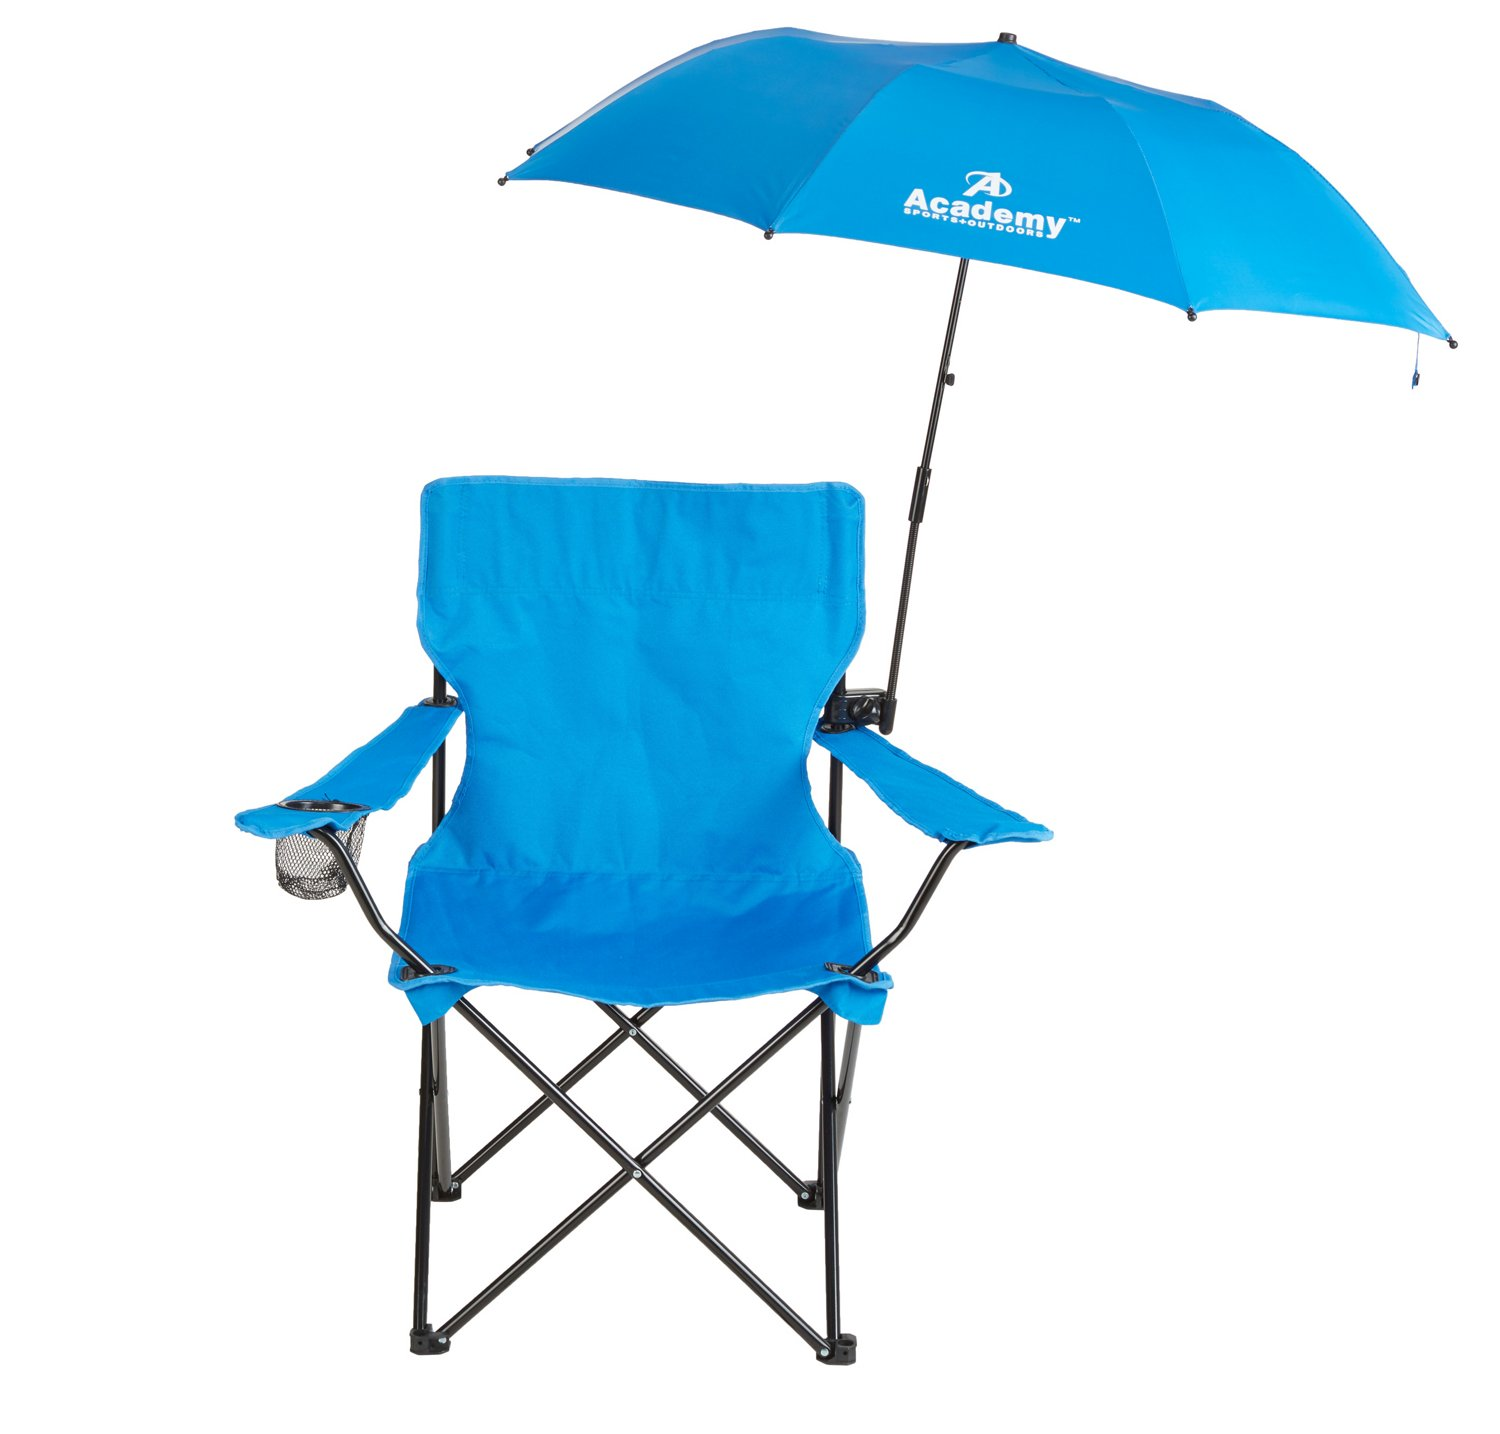 Clamp On Chair Umbrella Academy Sports Outdoors 3 4 Ft Clamp On Umbrella